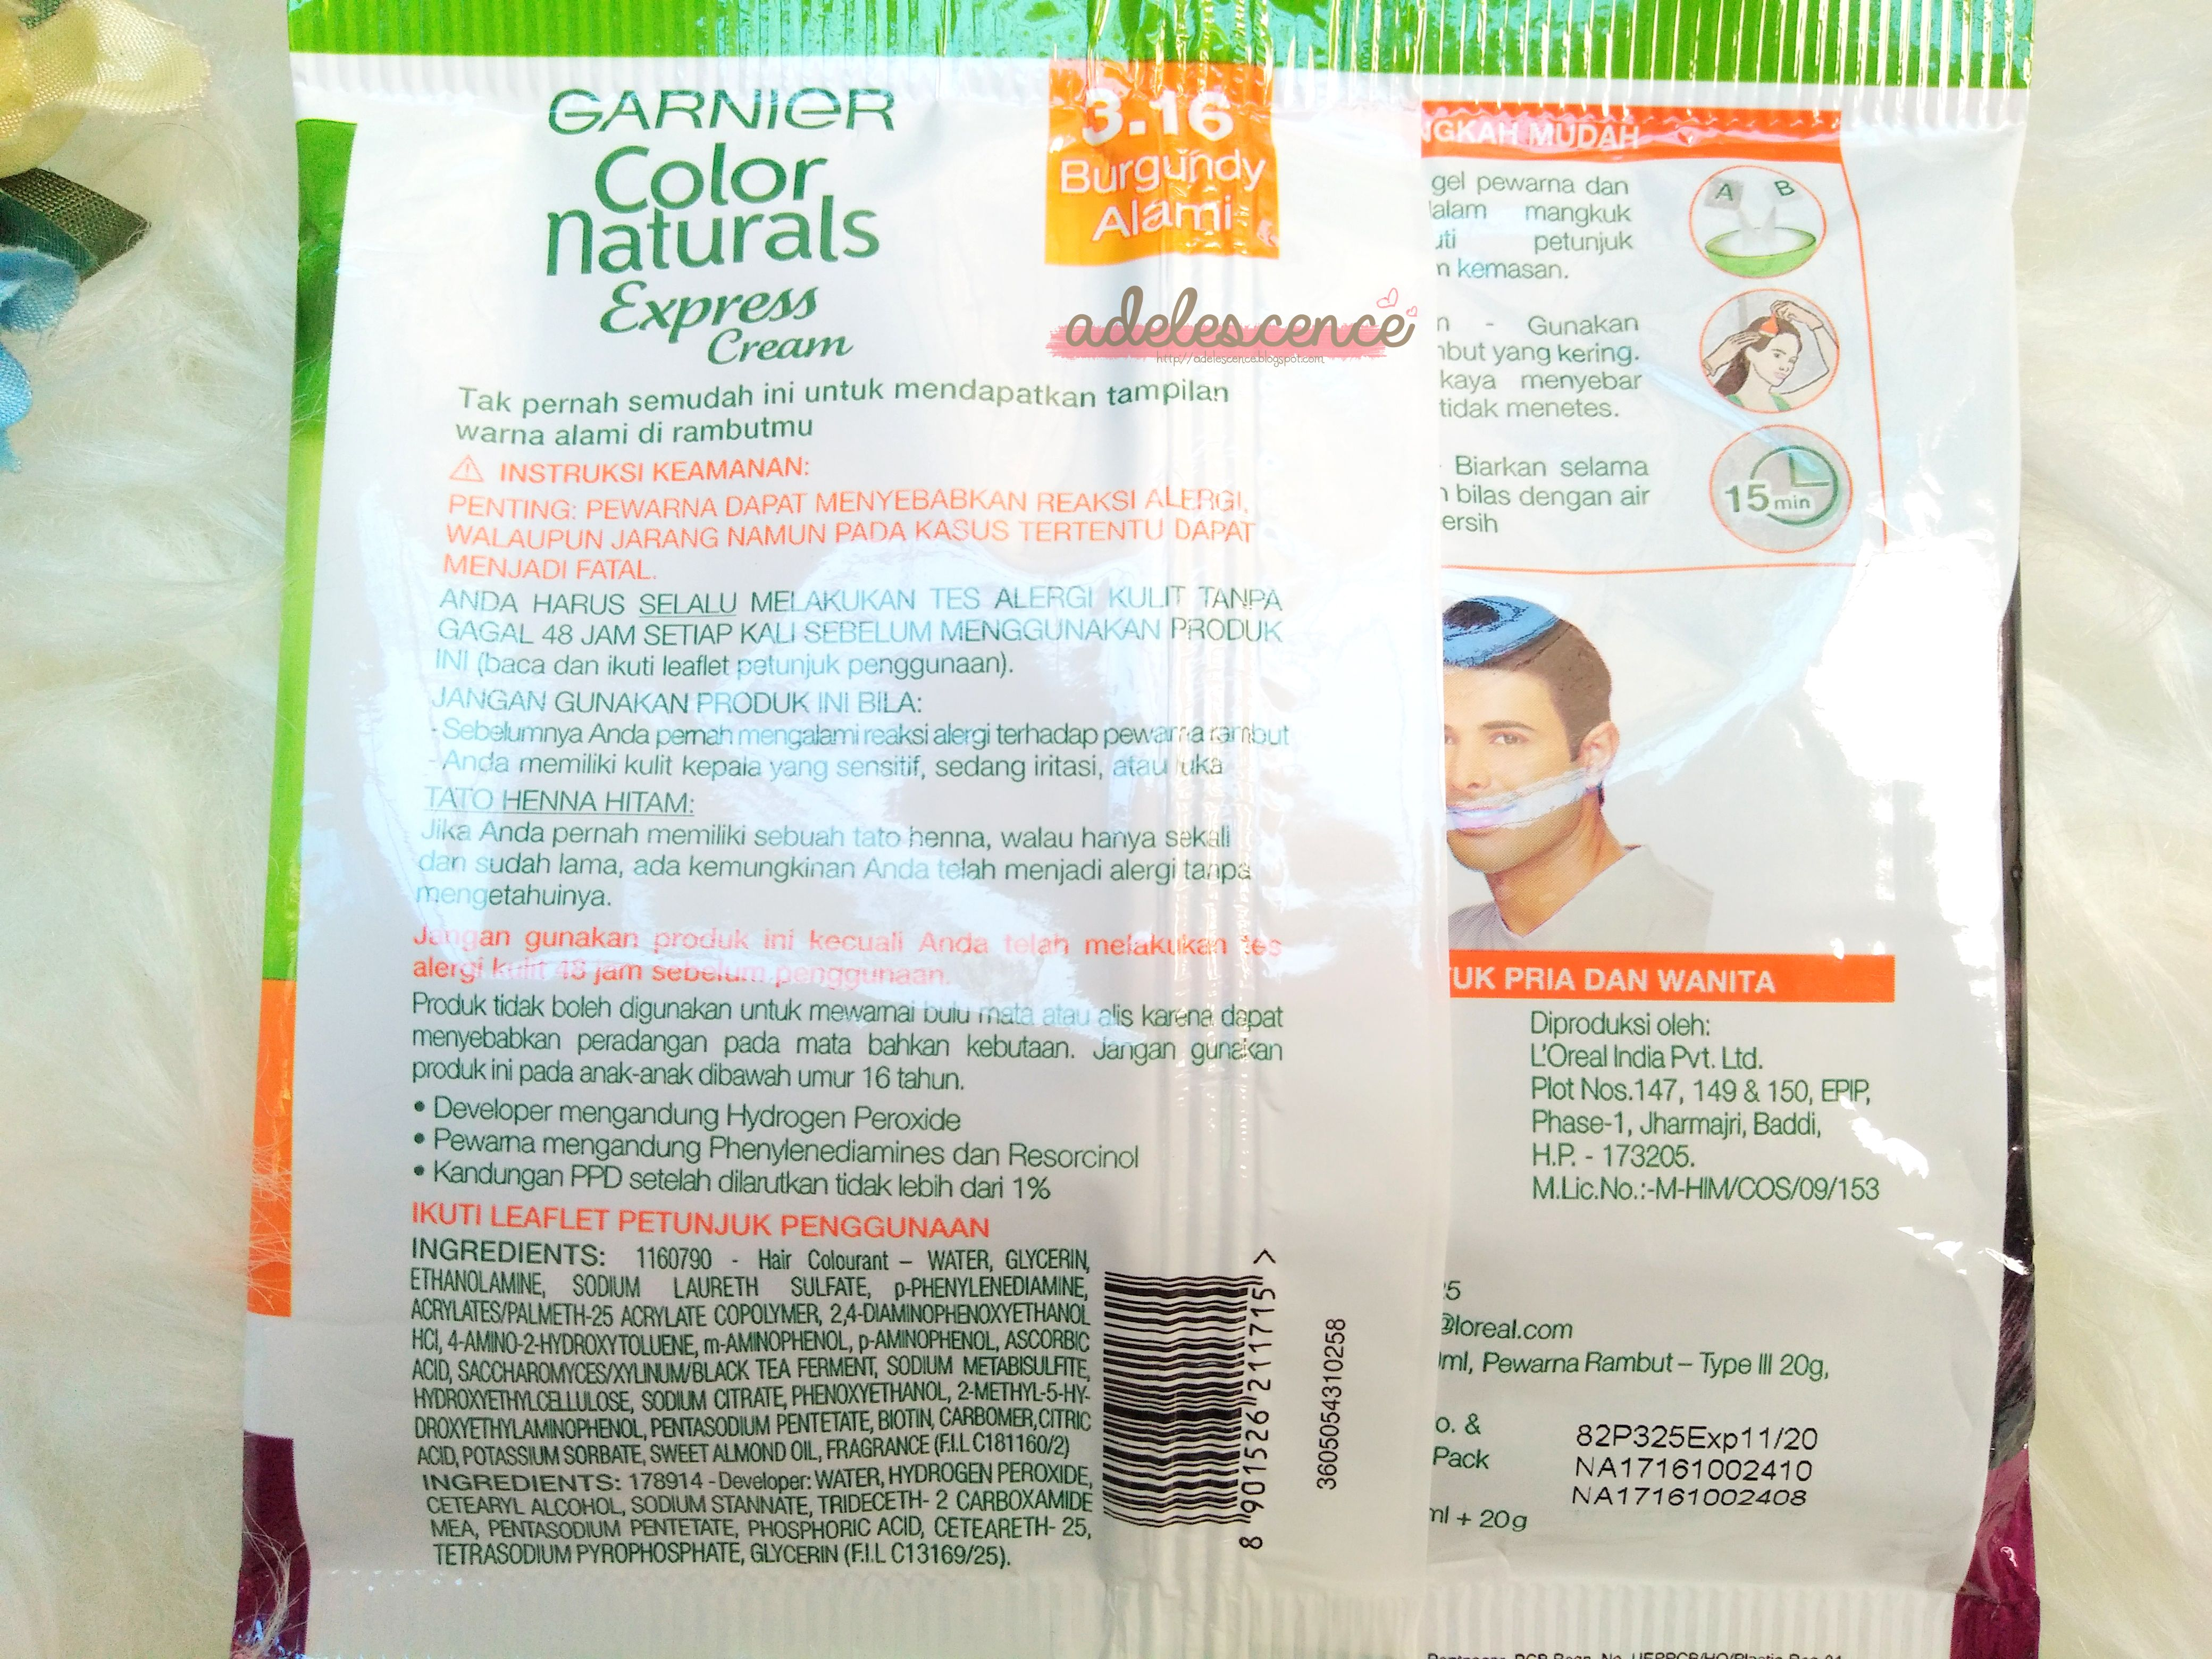 gambar review ke-3 untuk Garnier Color Naturals Express Cream